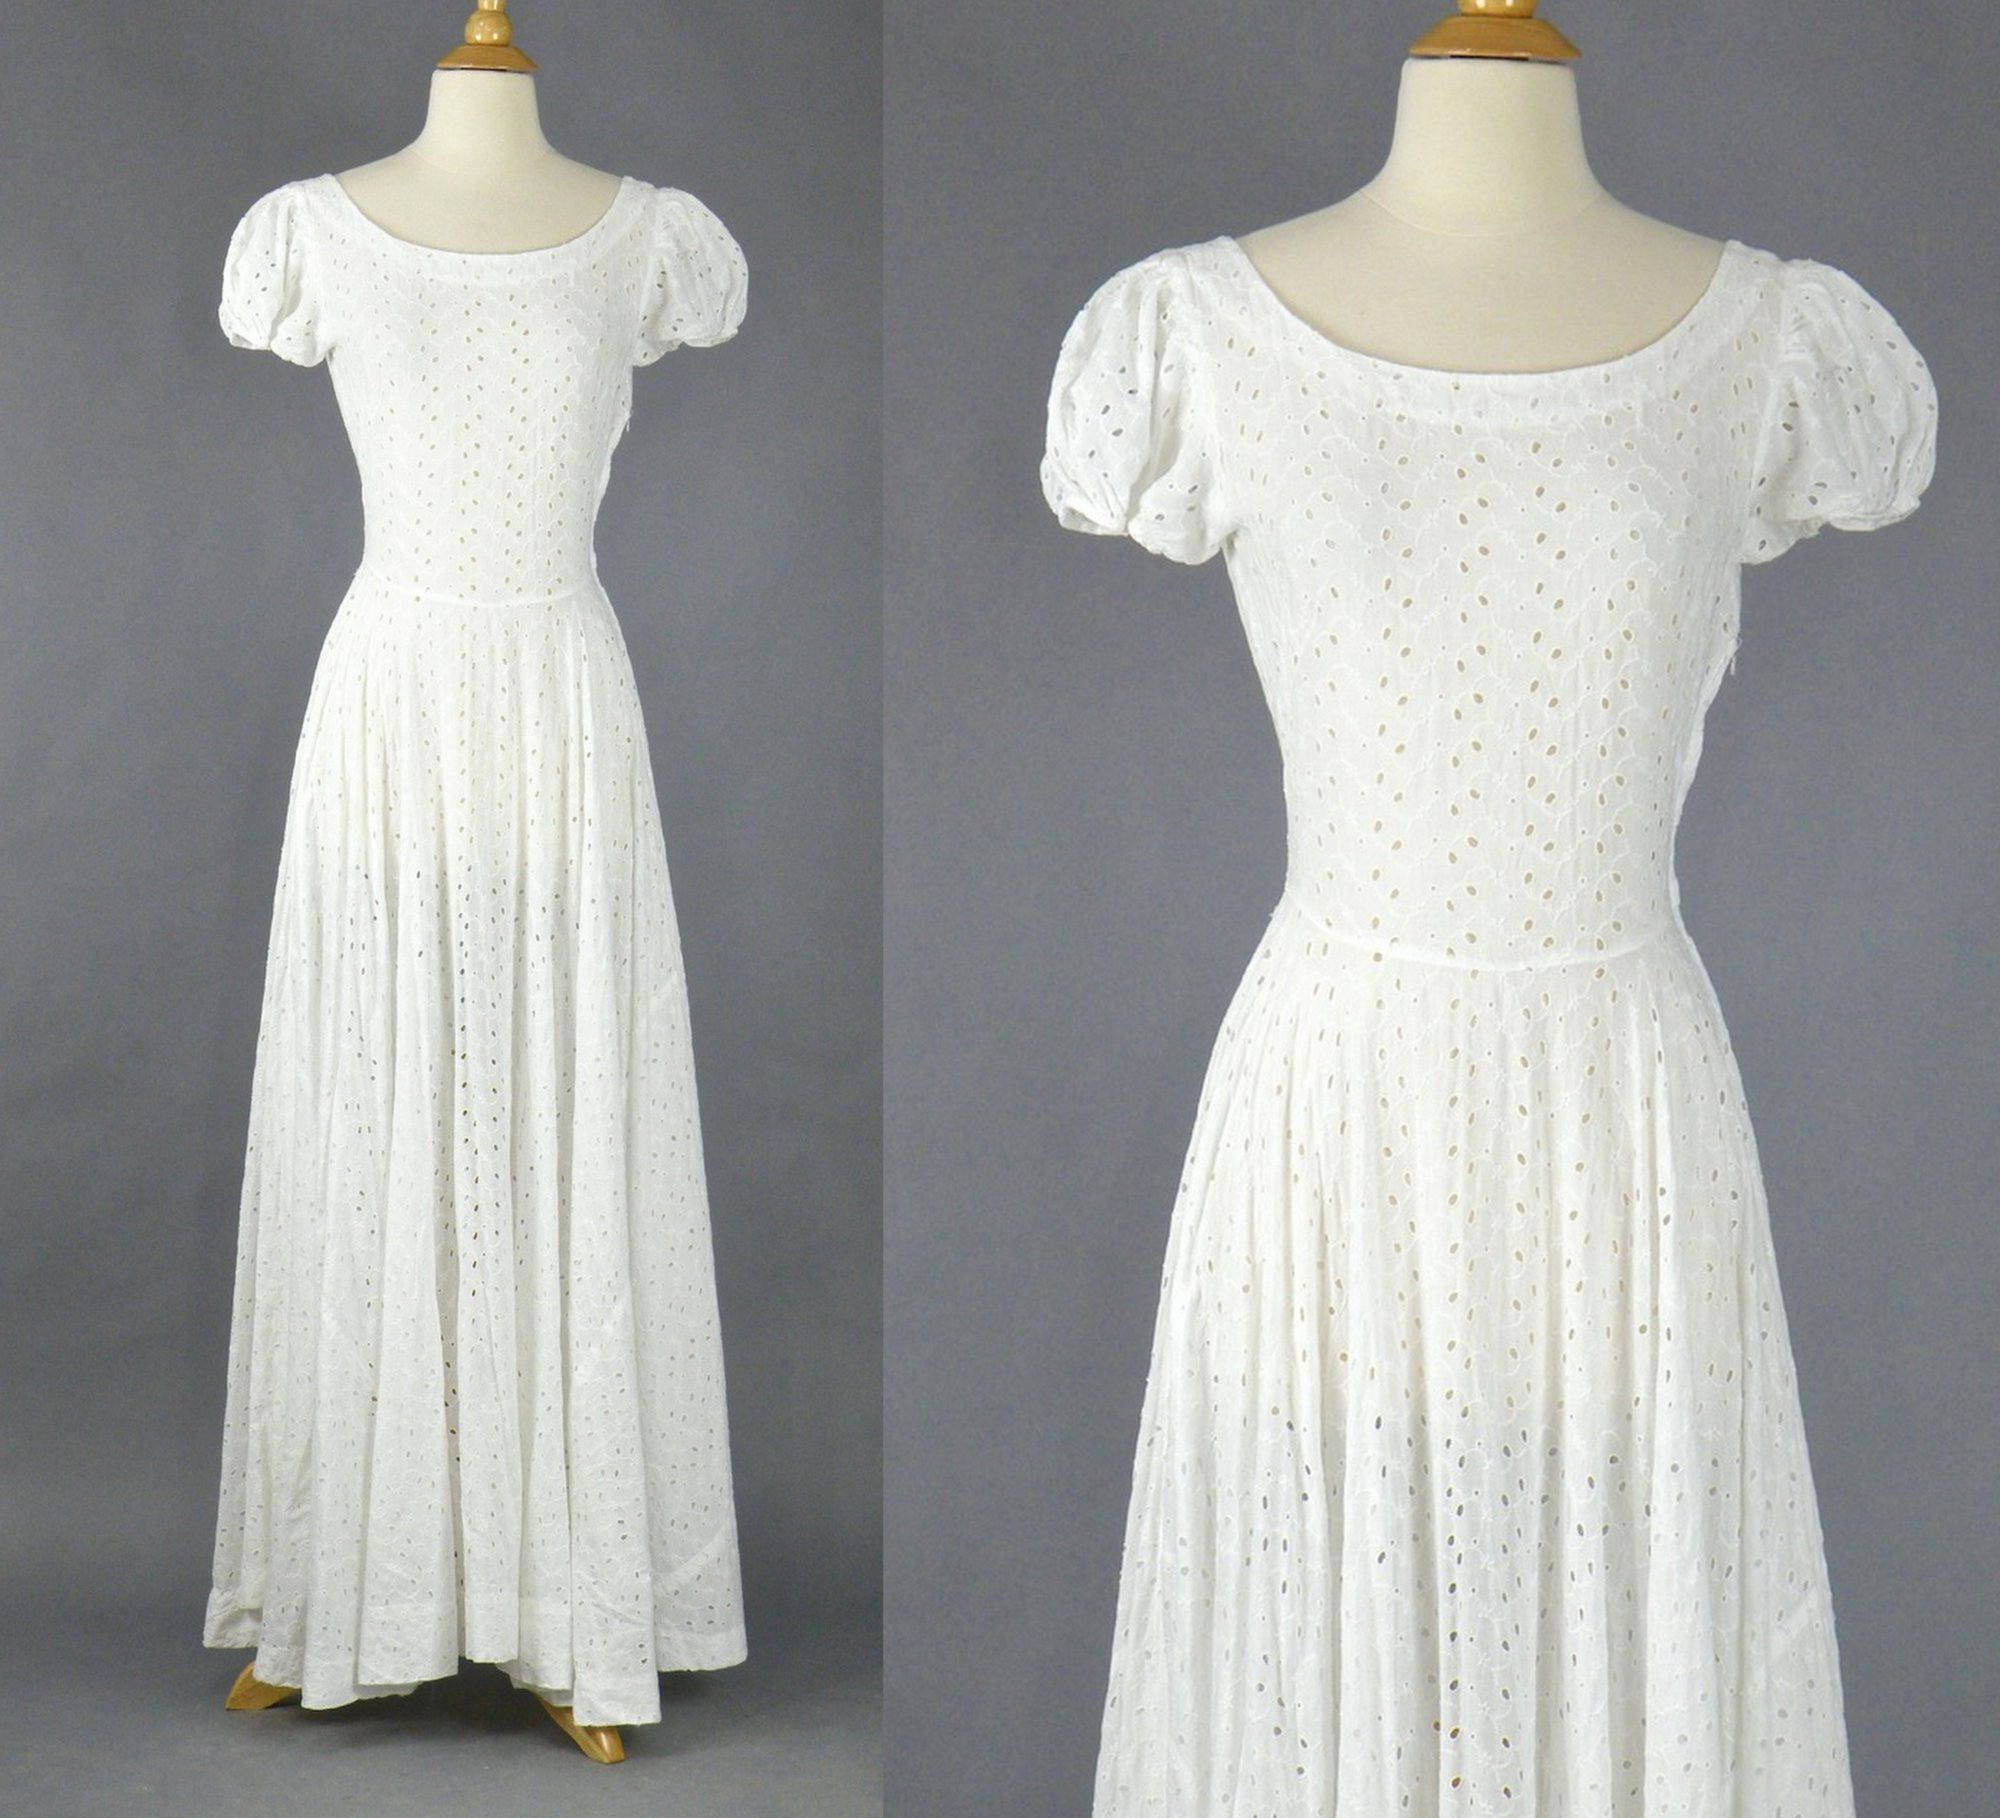 1940s White Eyelet Dress Vintage 40s Cotton Wedding By Daisyandstella On Etsy